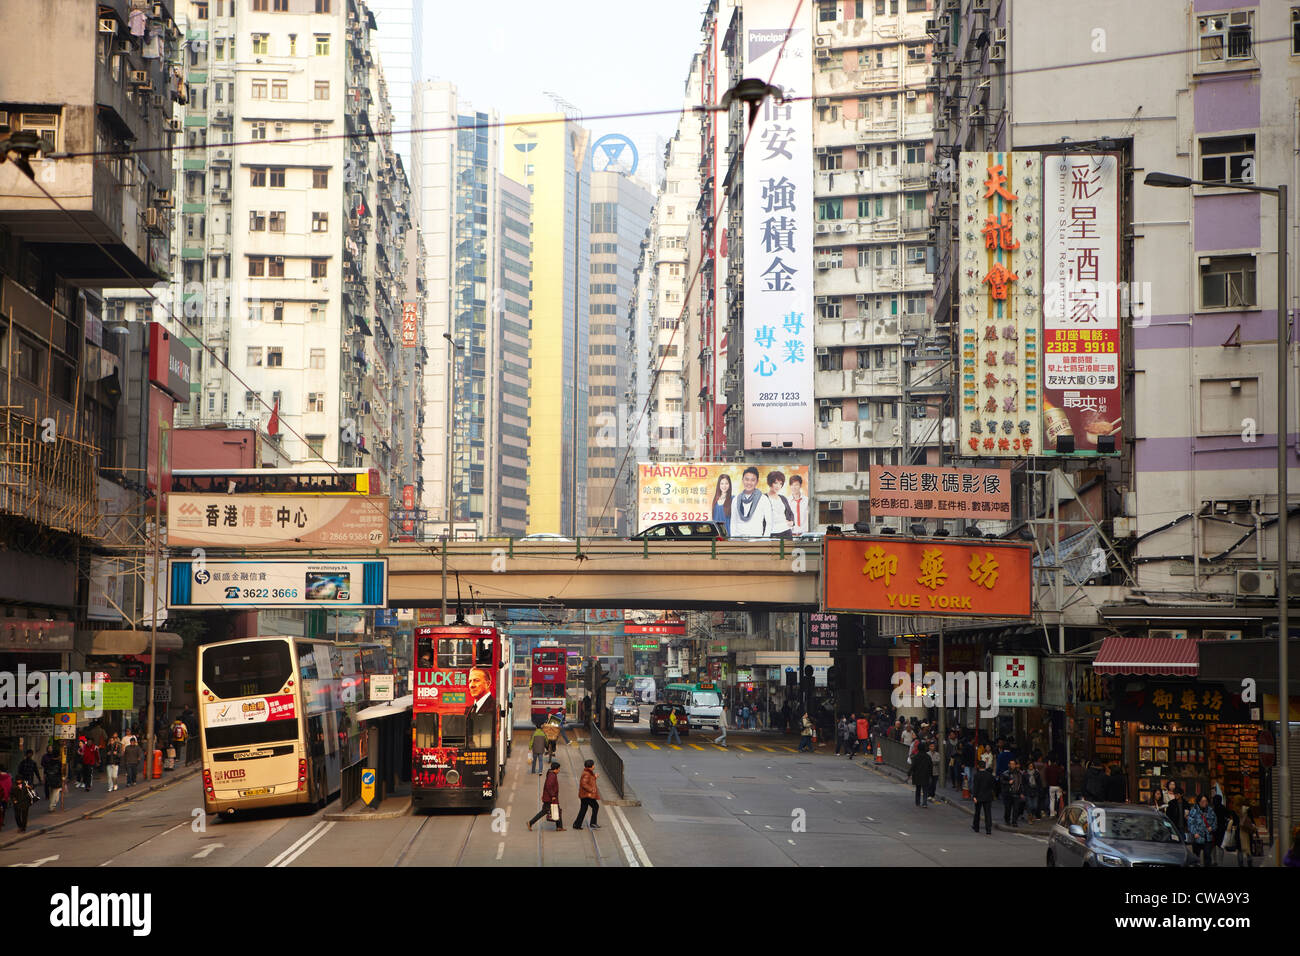 Busy street scene, hong kong, china - Stock Image